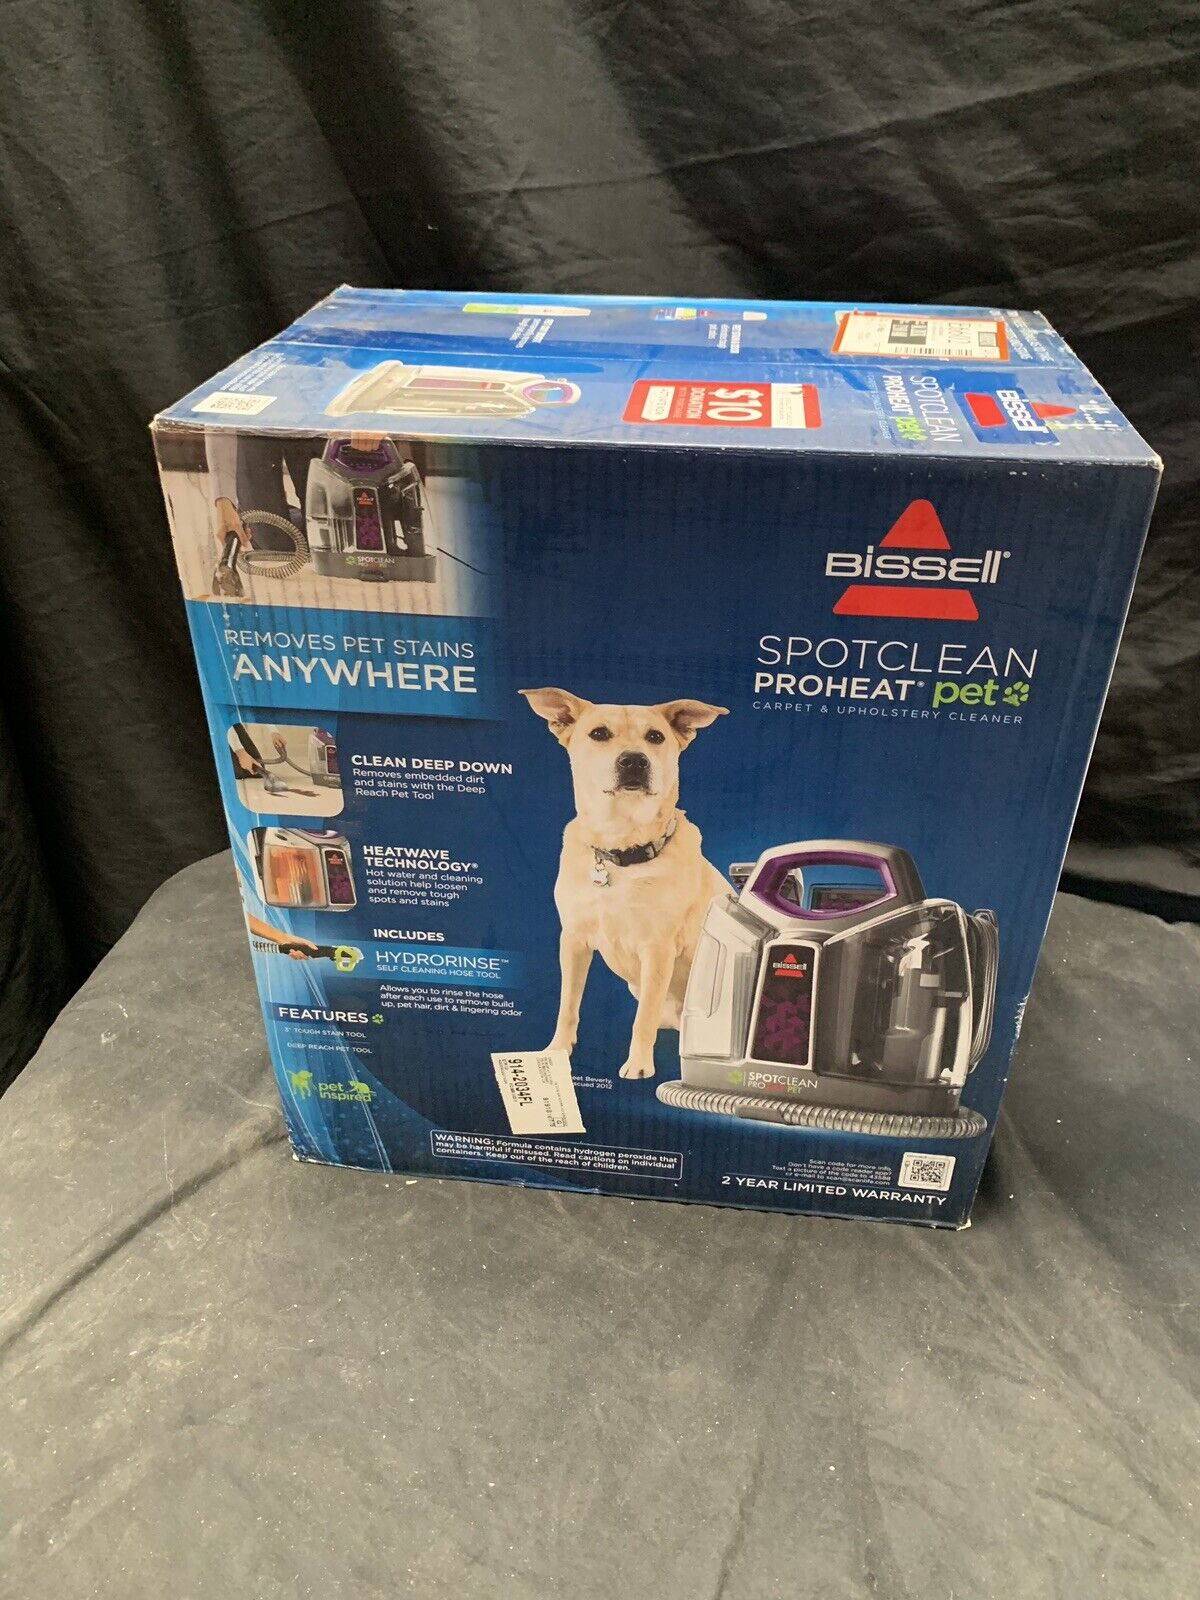 Details About Bissell Spotclean Proheat Pet Portable Carpet Cleaner 6119w